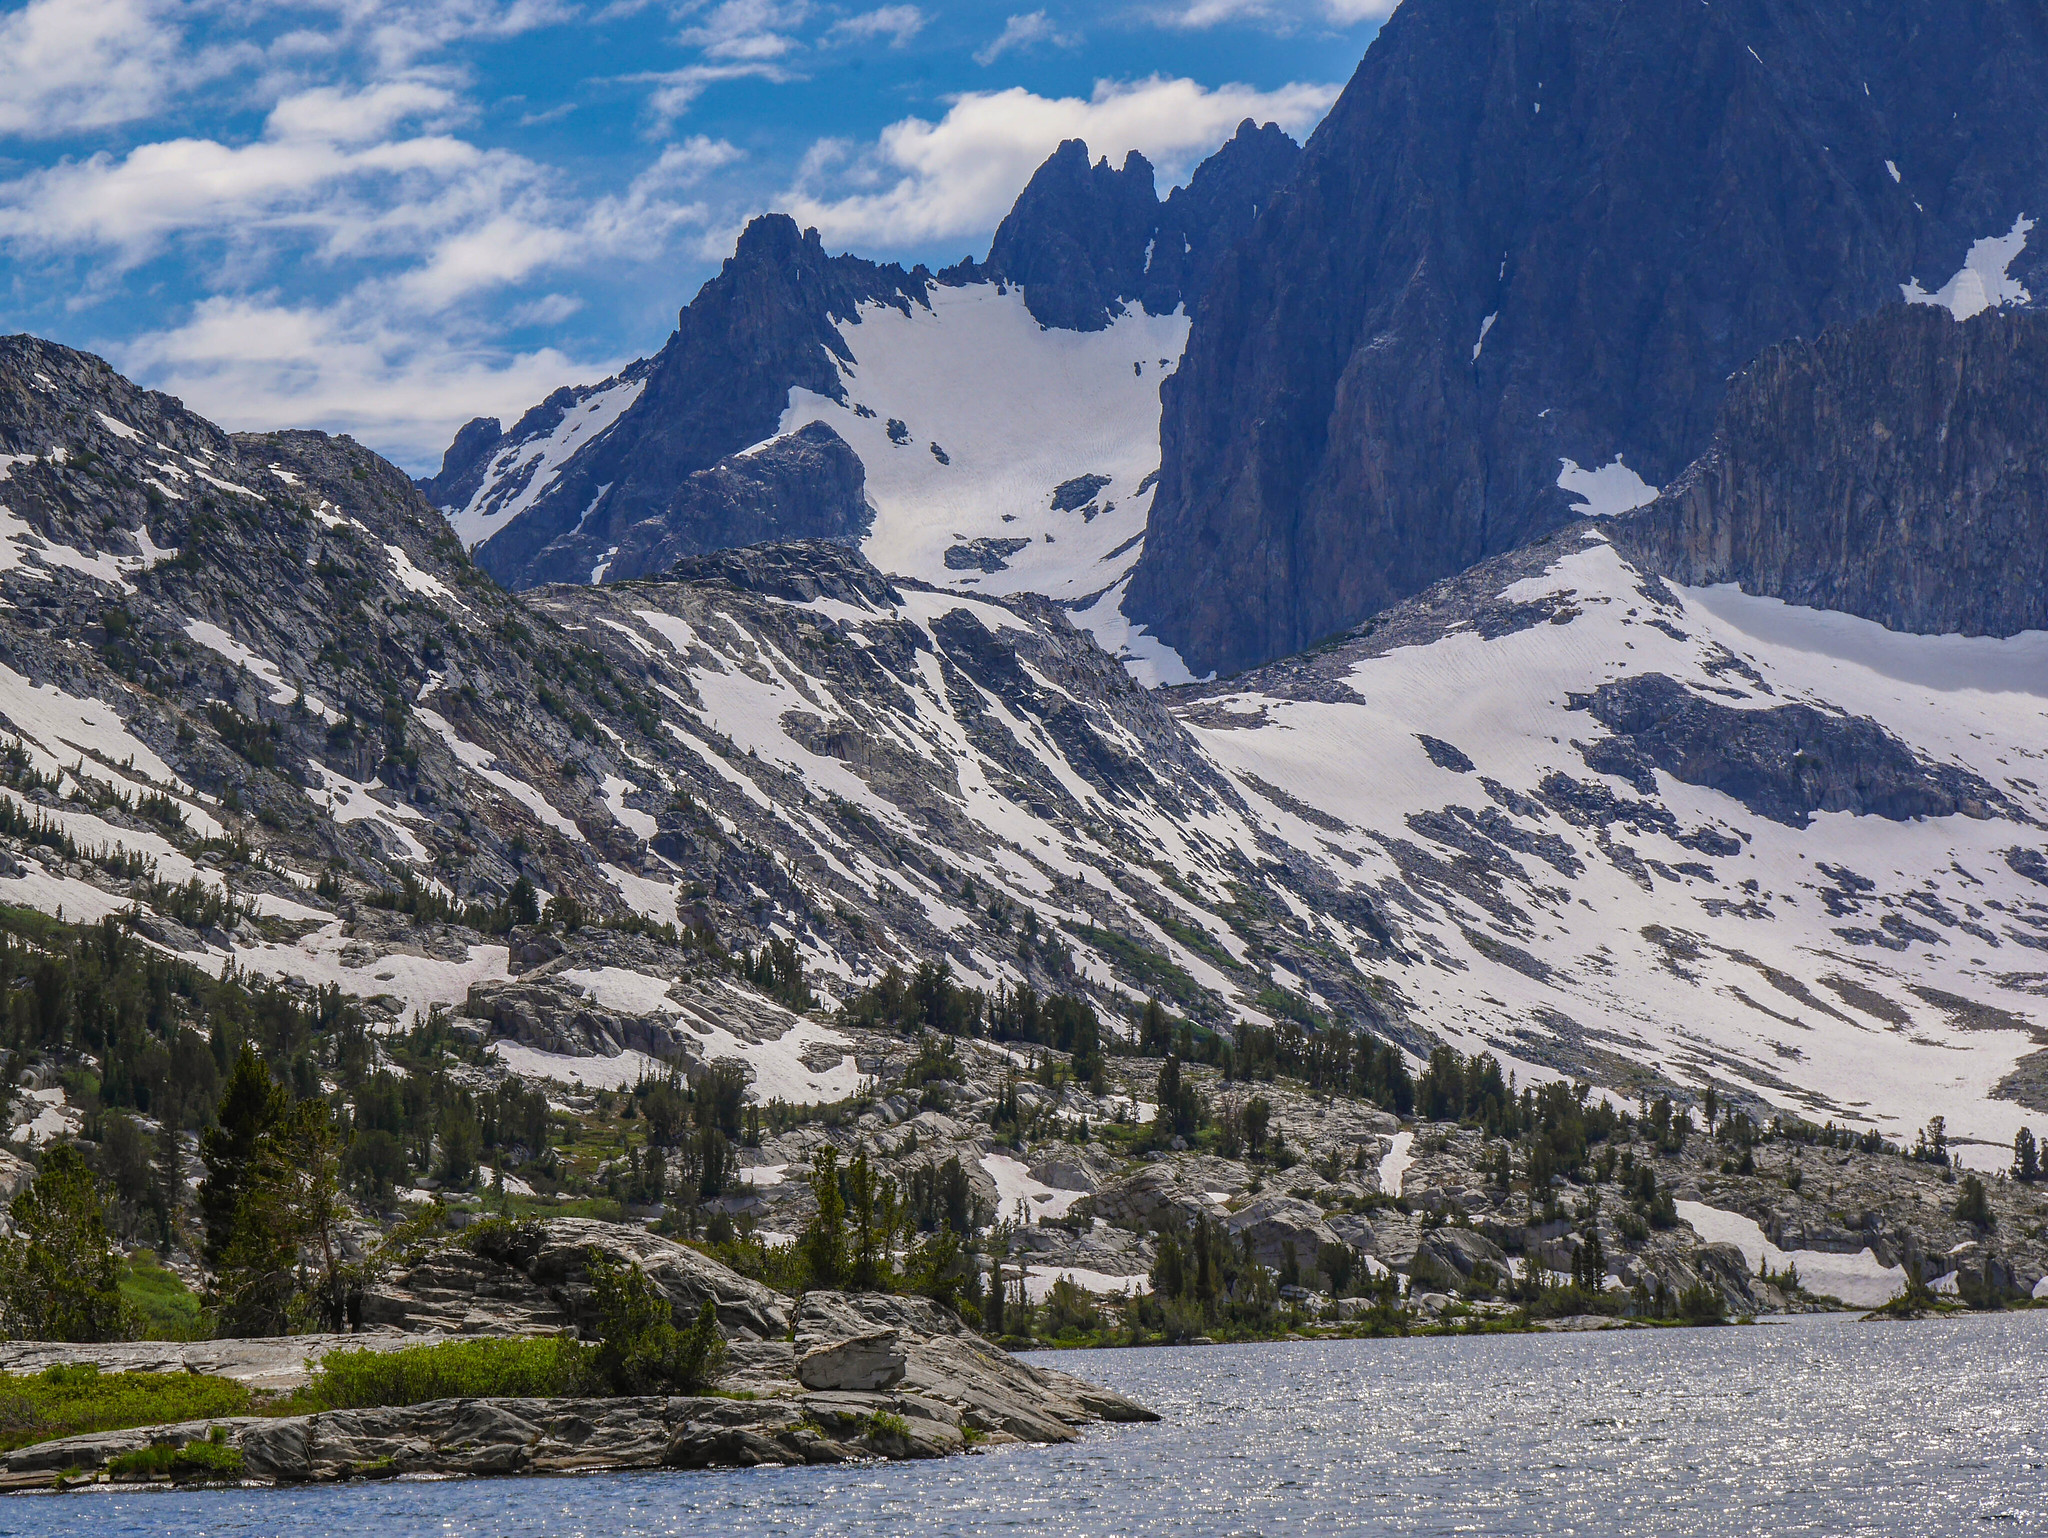 A look at Whitebark Pass. A lot of steep snow still!